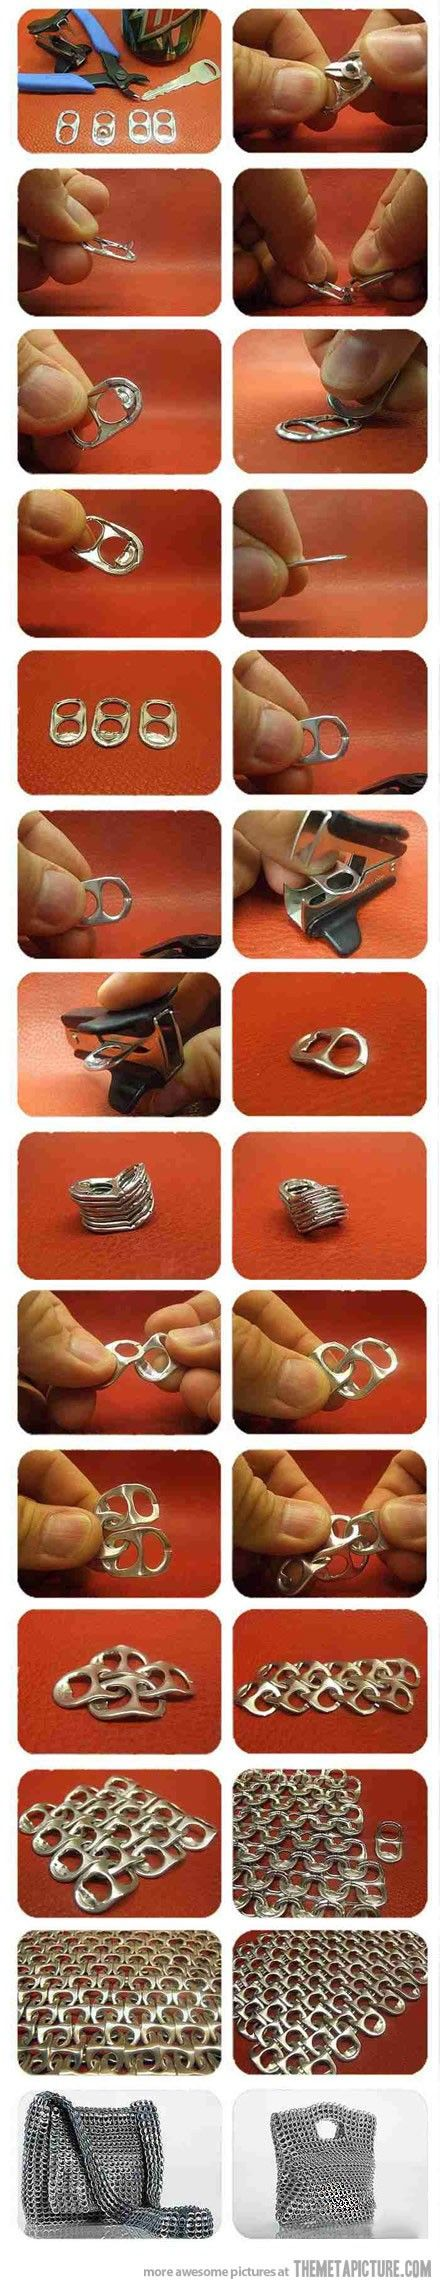 Repinned From Craft Ideas BySodas Tabs, Ideas, Pop Tabs, Chain Mail, Pop Cans, Chains Mail, Diy, Crafts, Chainmail